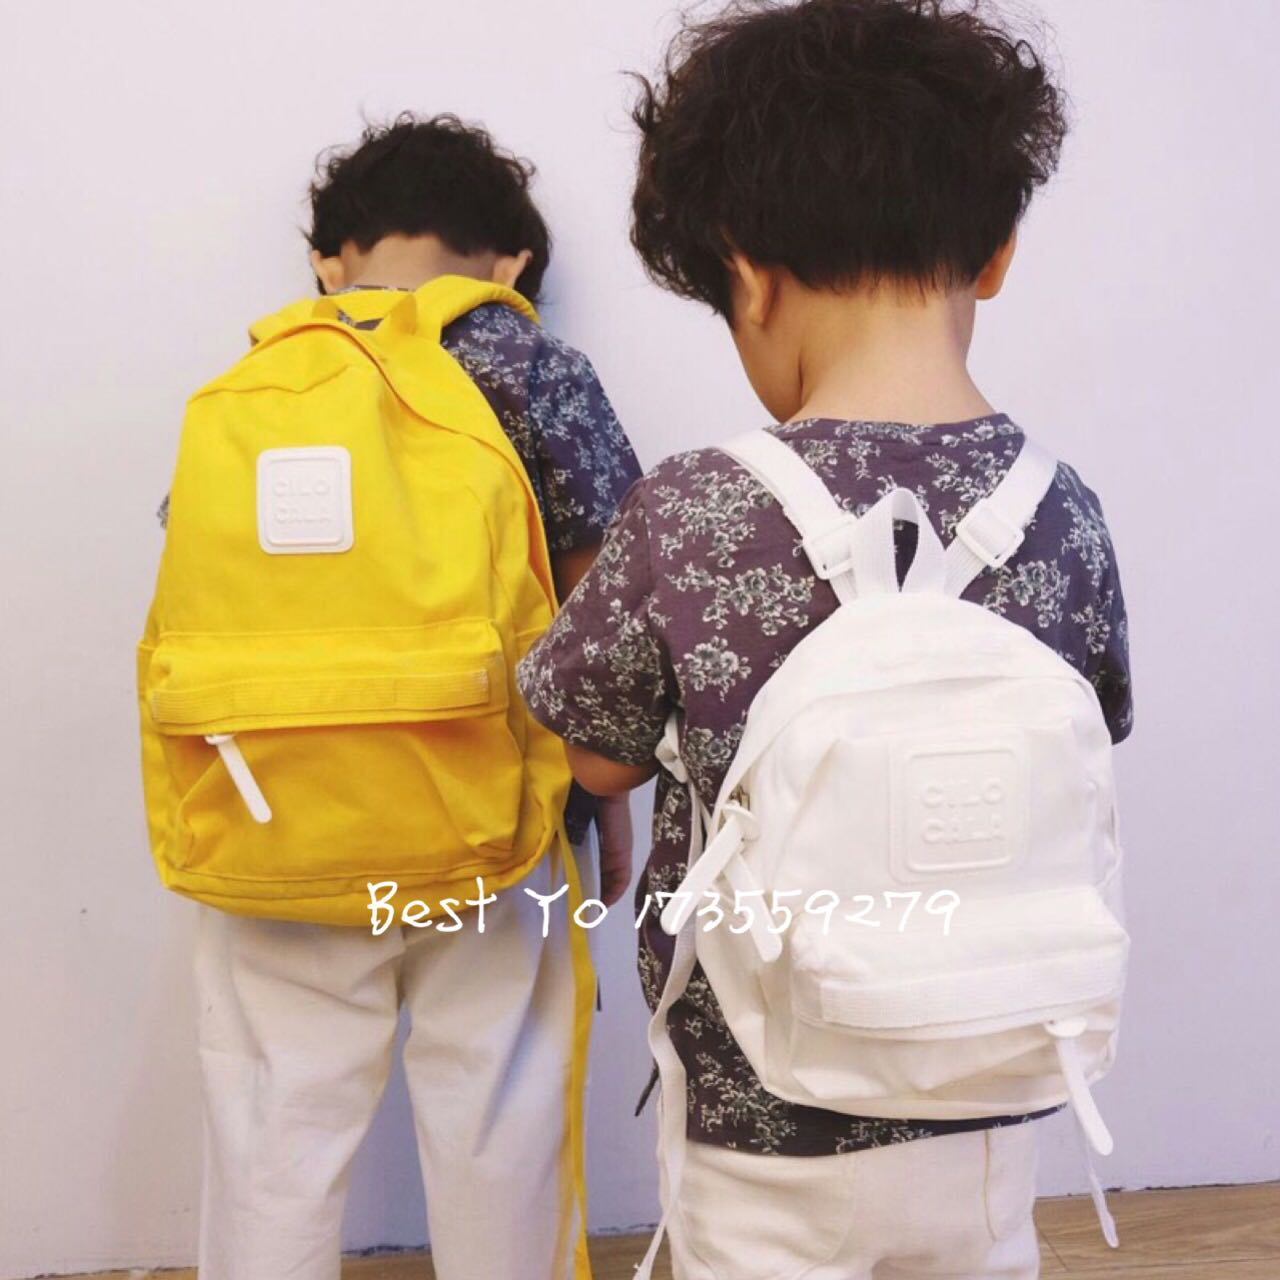 Best Yo export to Japan kindergarten Japanese style Kawai anti lost parent-child Backpack